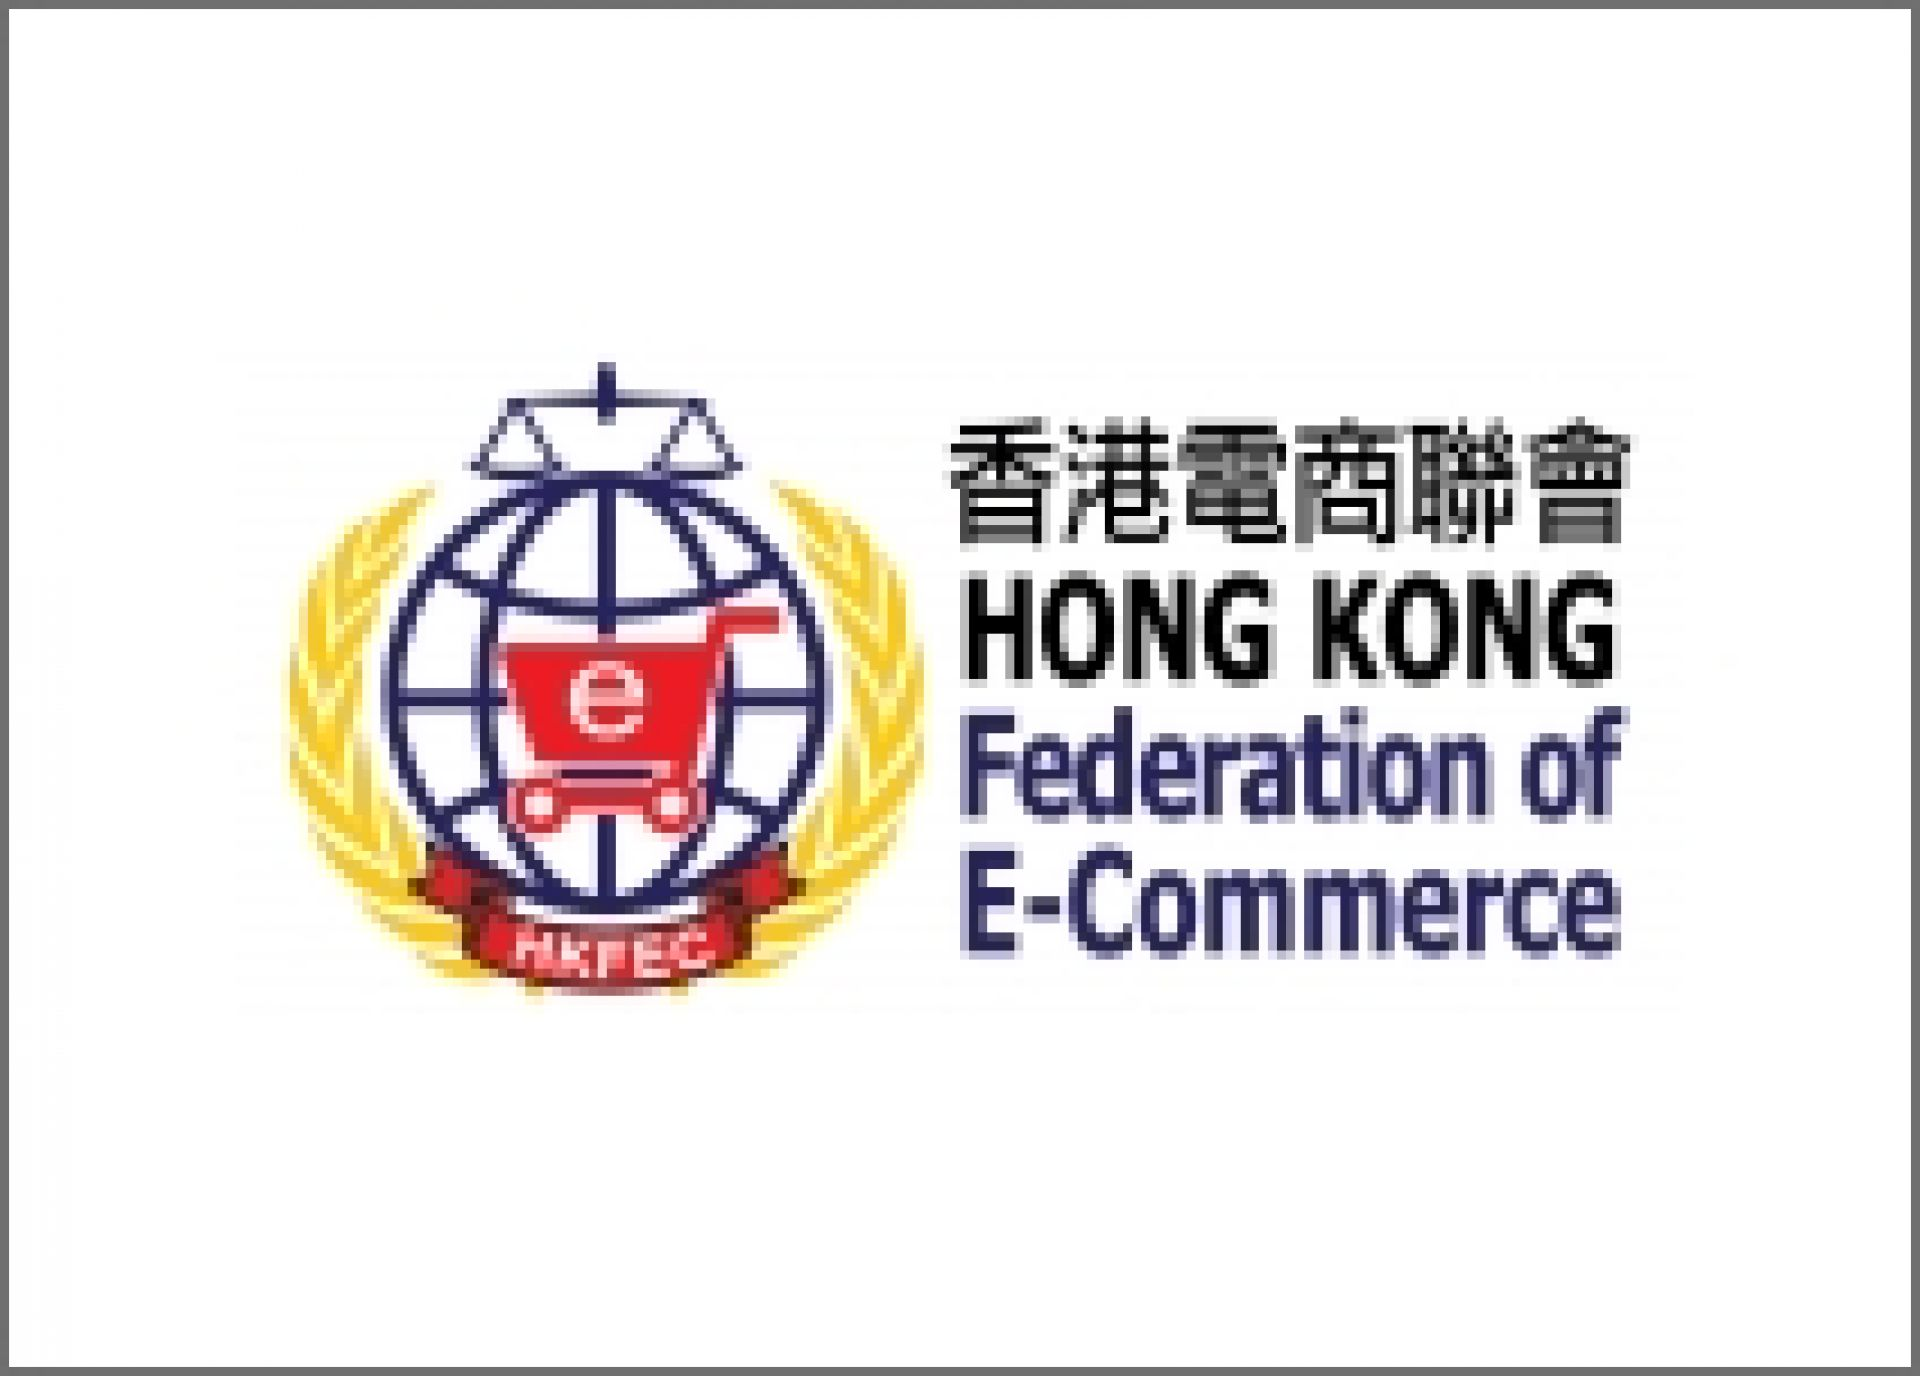 Hong Kong Federation of E-Commerce